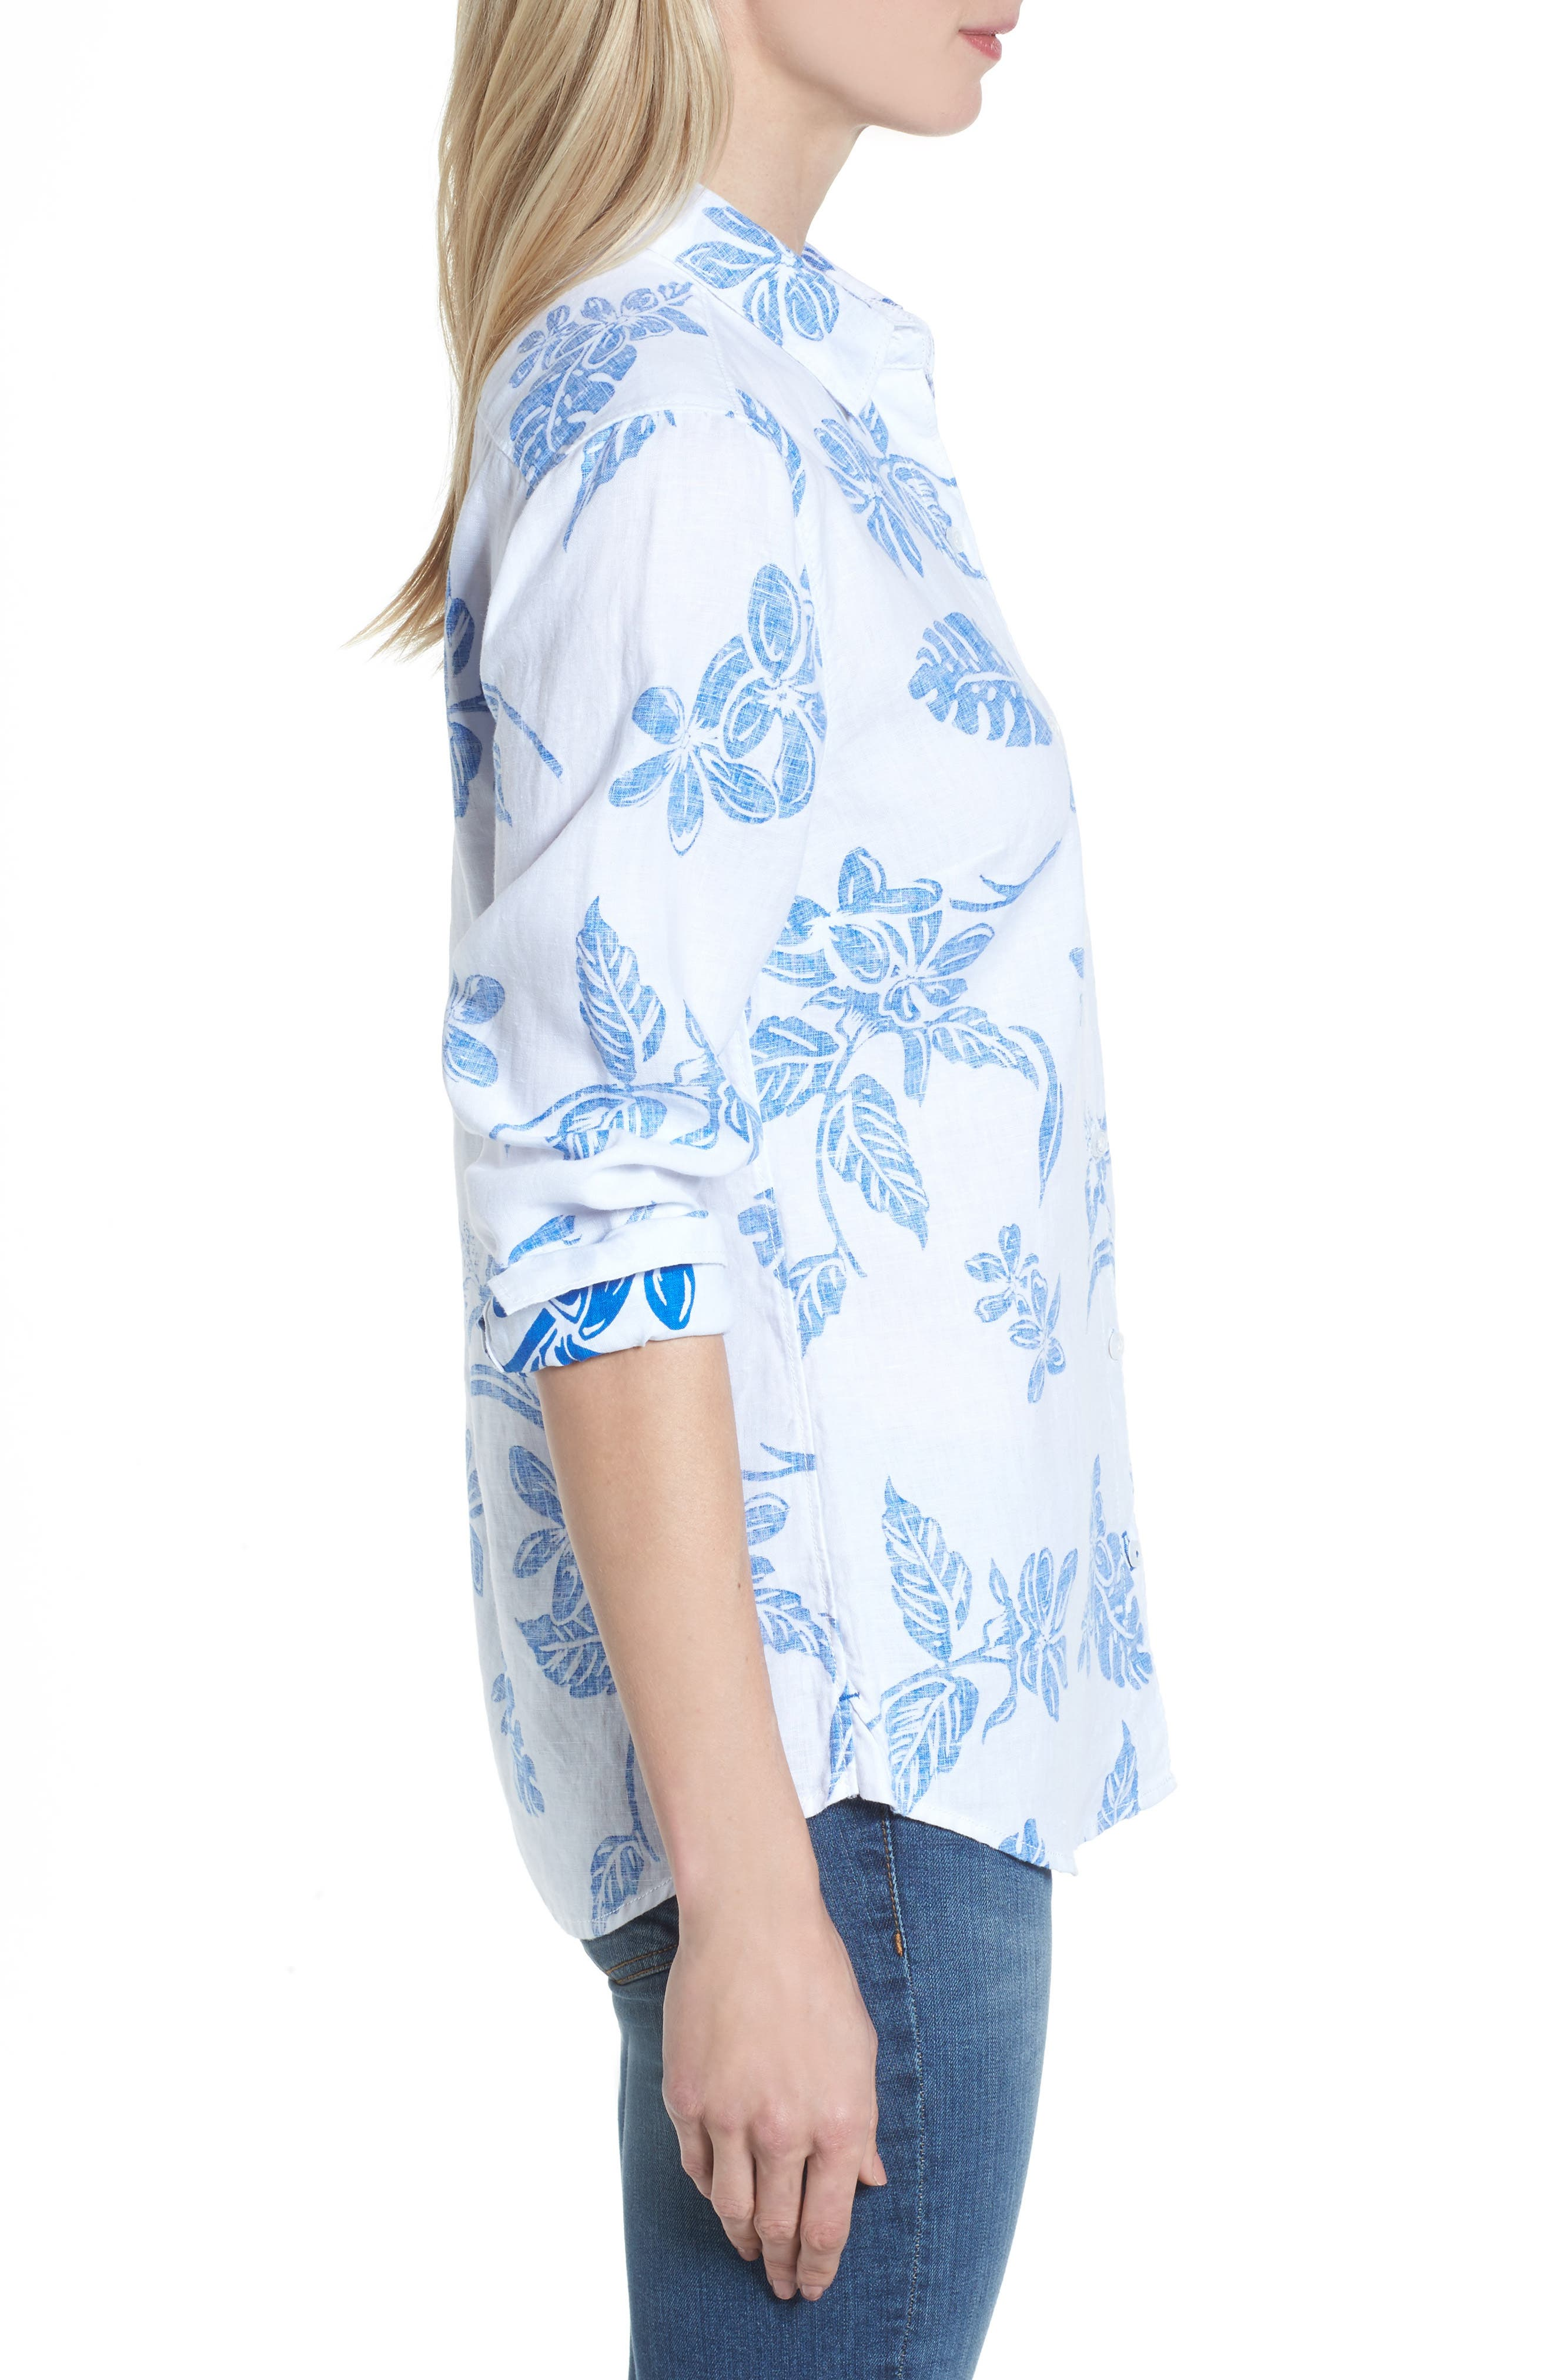 Hibiscus Hiatus Long Sleeve Top,                             Alternate thumbnail 3, color,                             White/ Cobalt